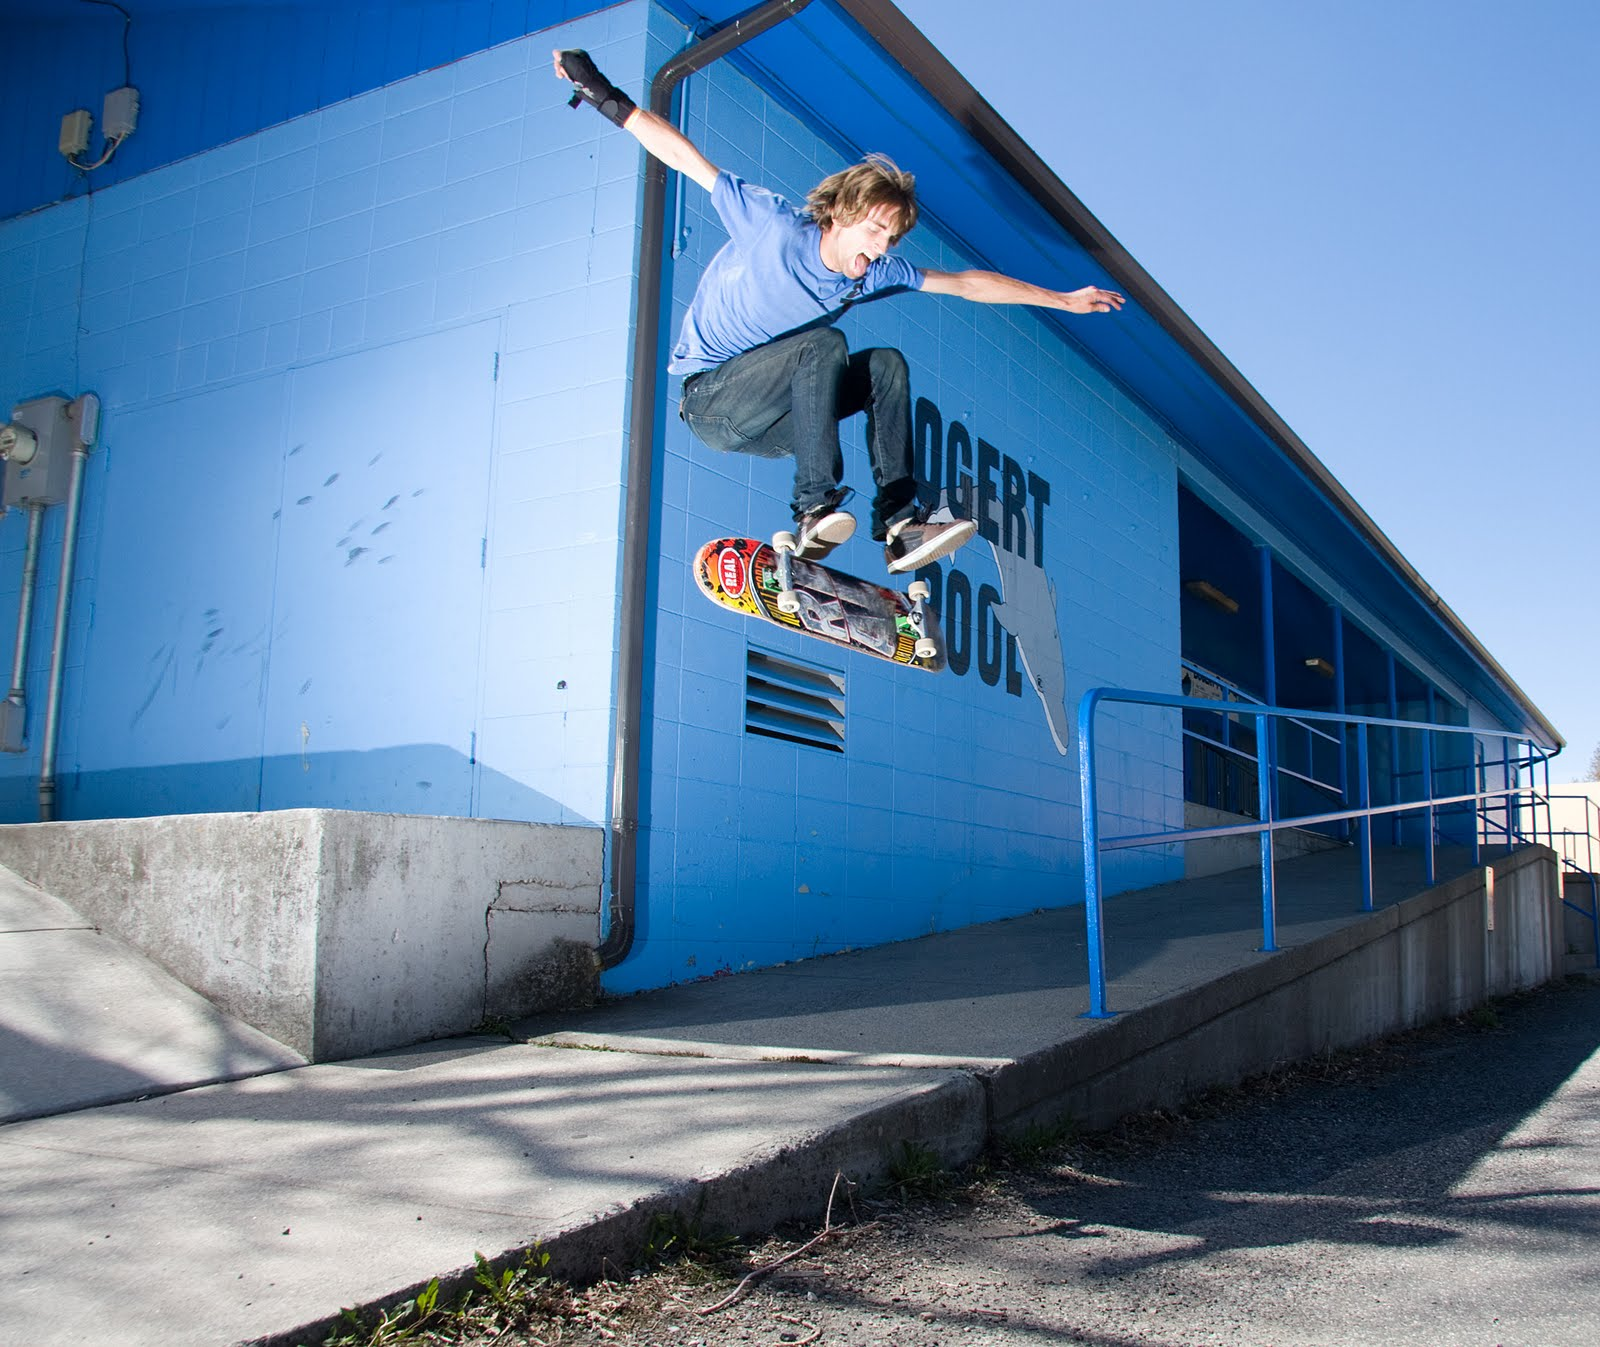 Logan Triplett can varial flip with the best of them